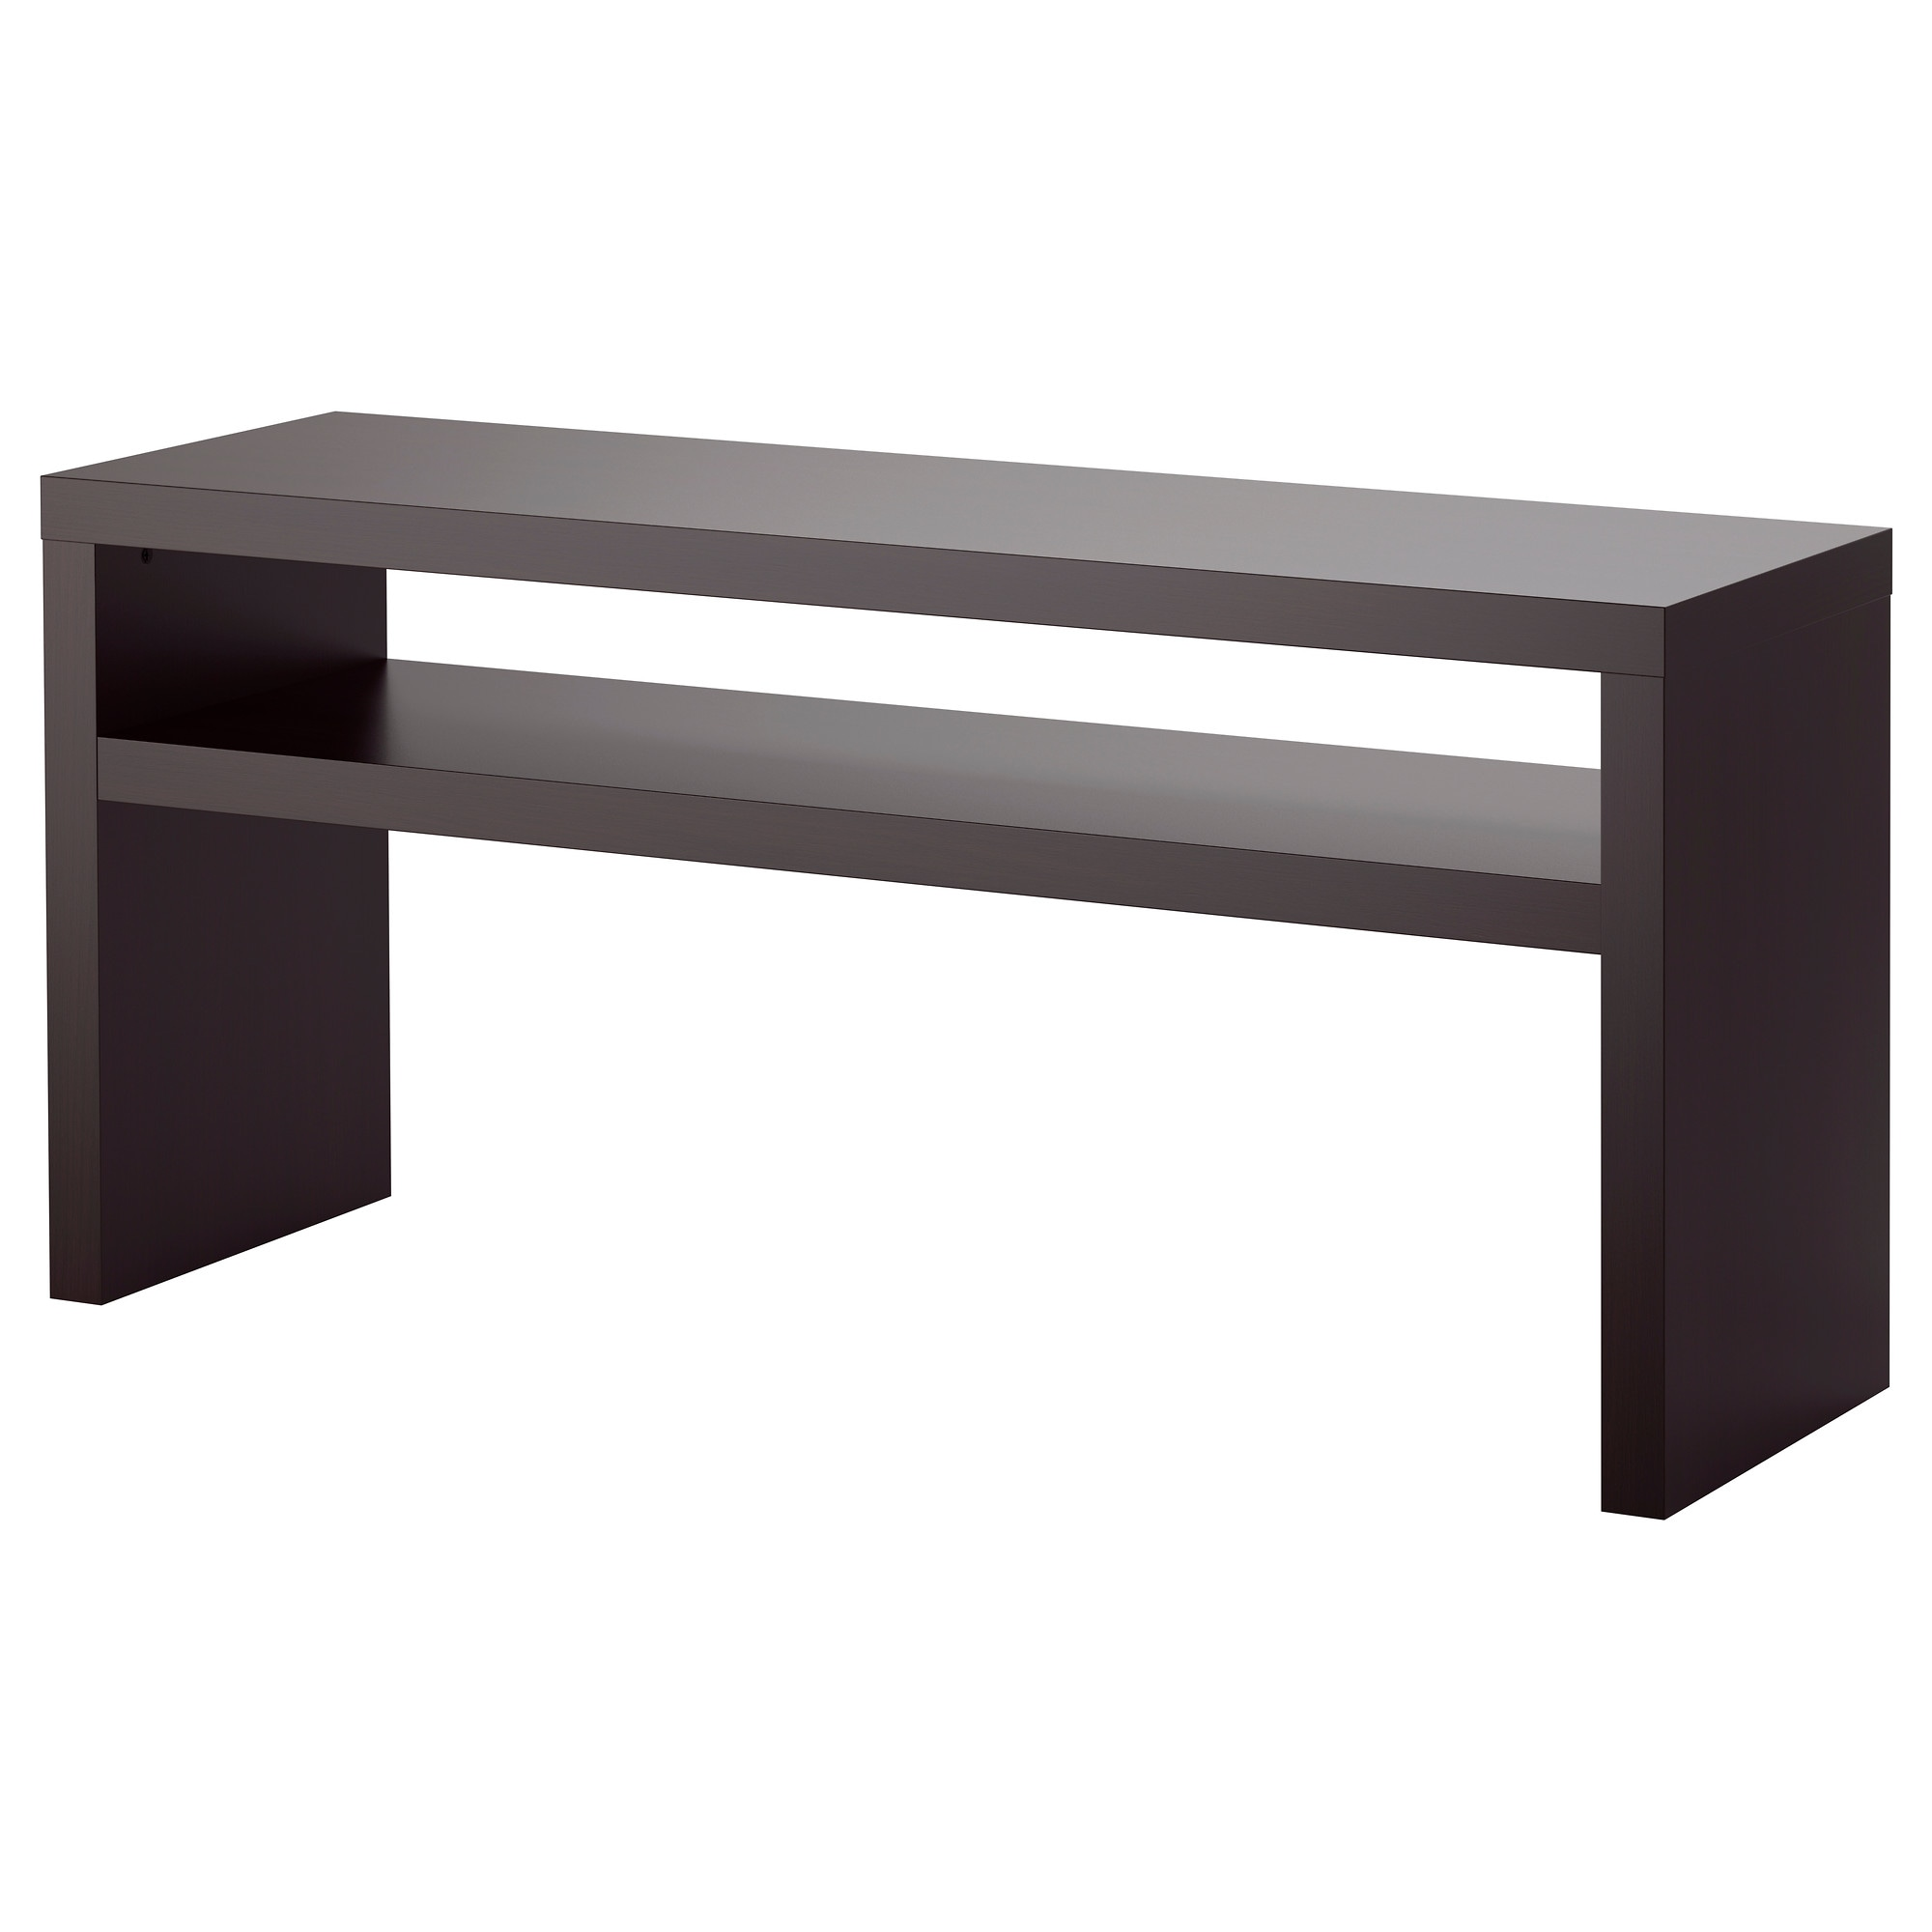 Buffet table furniture ikea - Lack Console Table Black Brown Length 55 1 8 Width